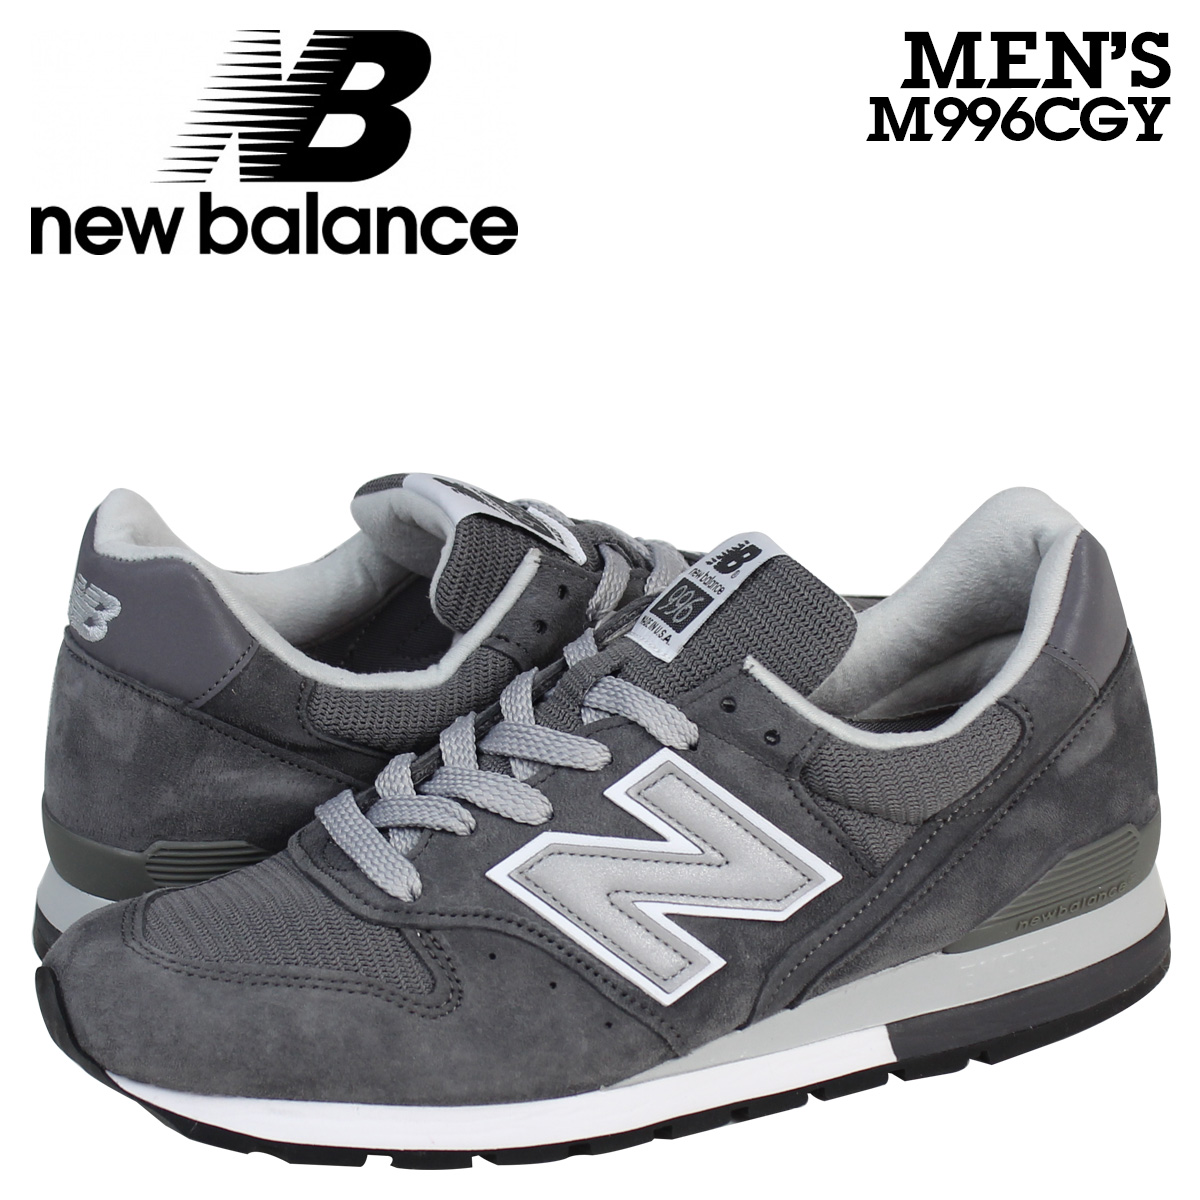 watch 7214b feb79 new balance New Balance 996 sneakers M996CGY MADE IN USA men shoes gray